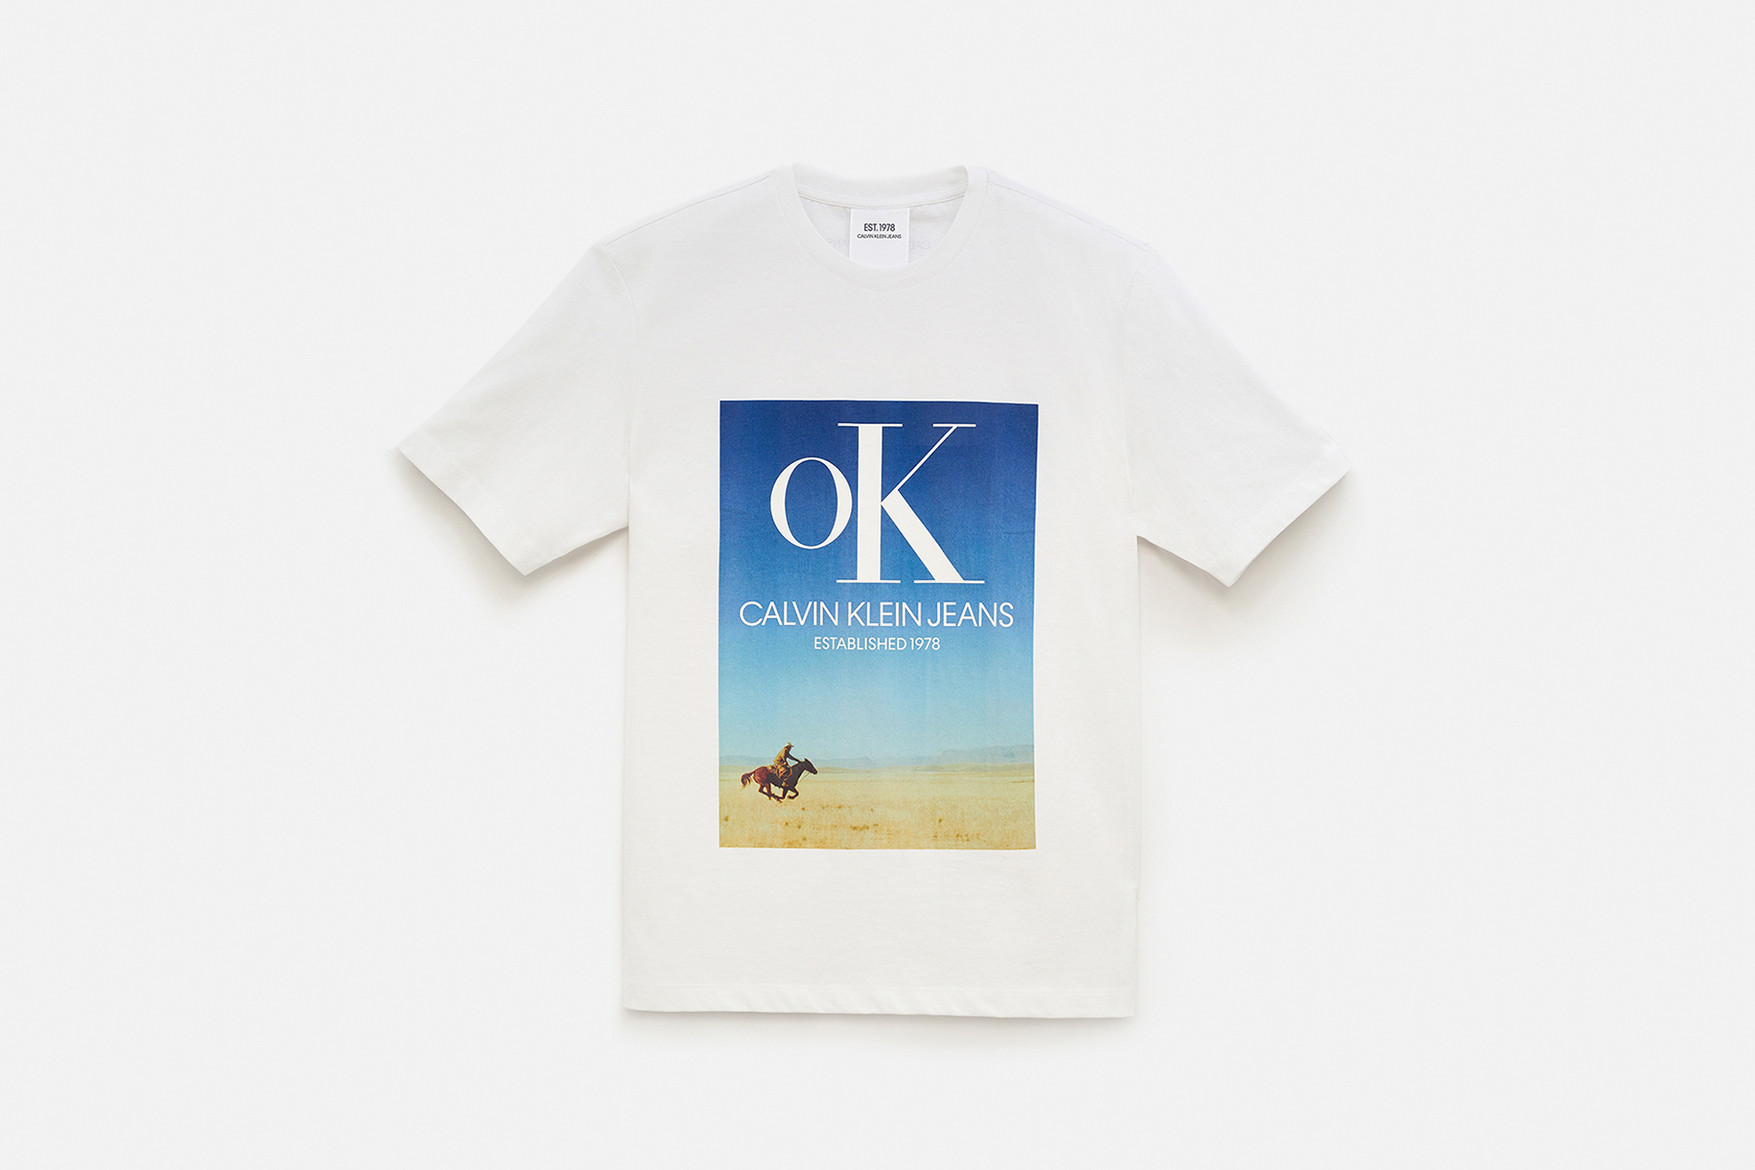 https_%2F%2Fhypebeast.com%2Fimage%2F2018%2F07%2Fcalvin-klein-jeans-Est-1978-delivery-1-14.jpg